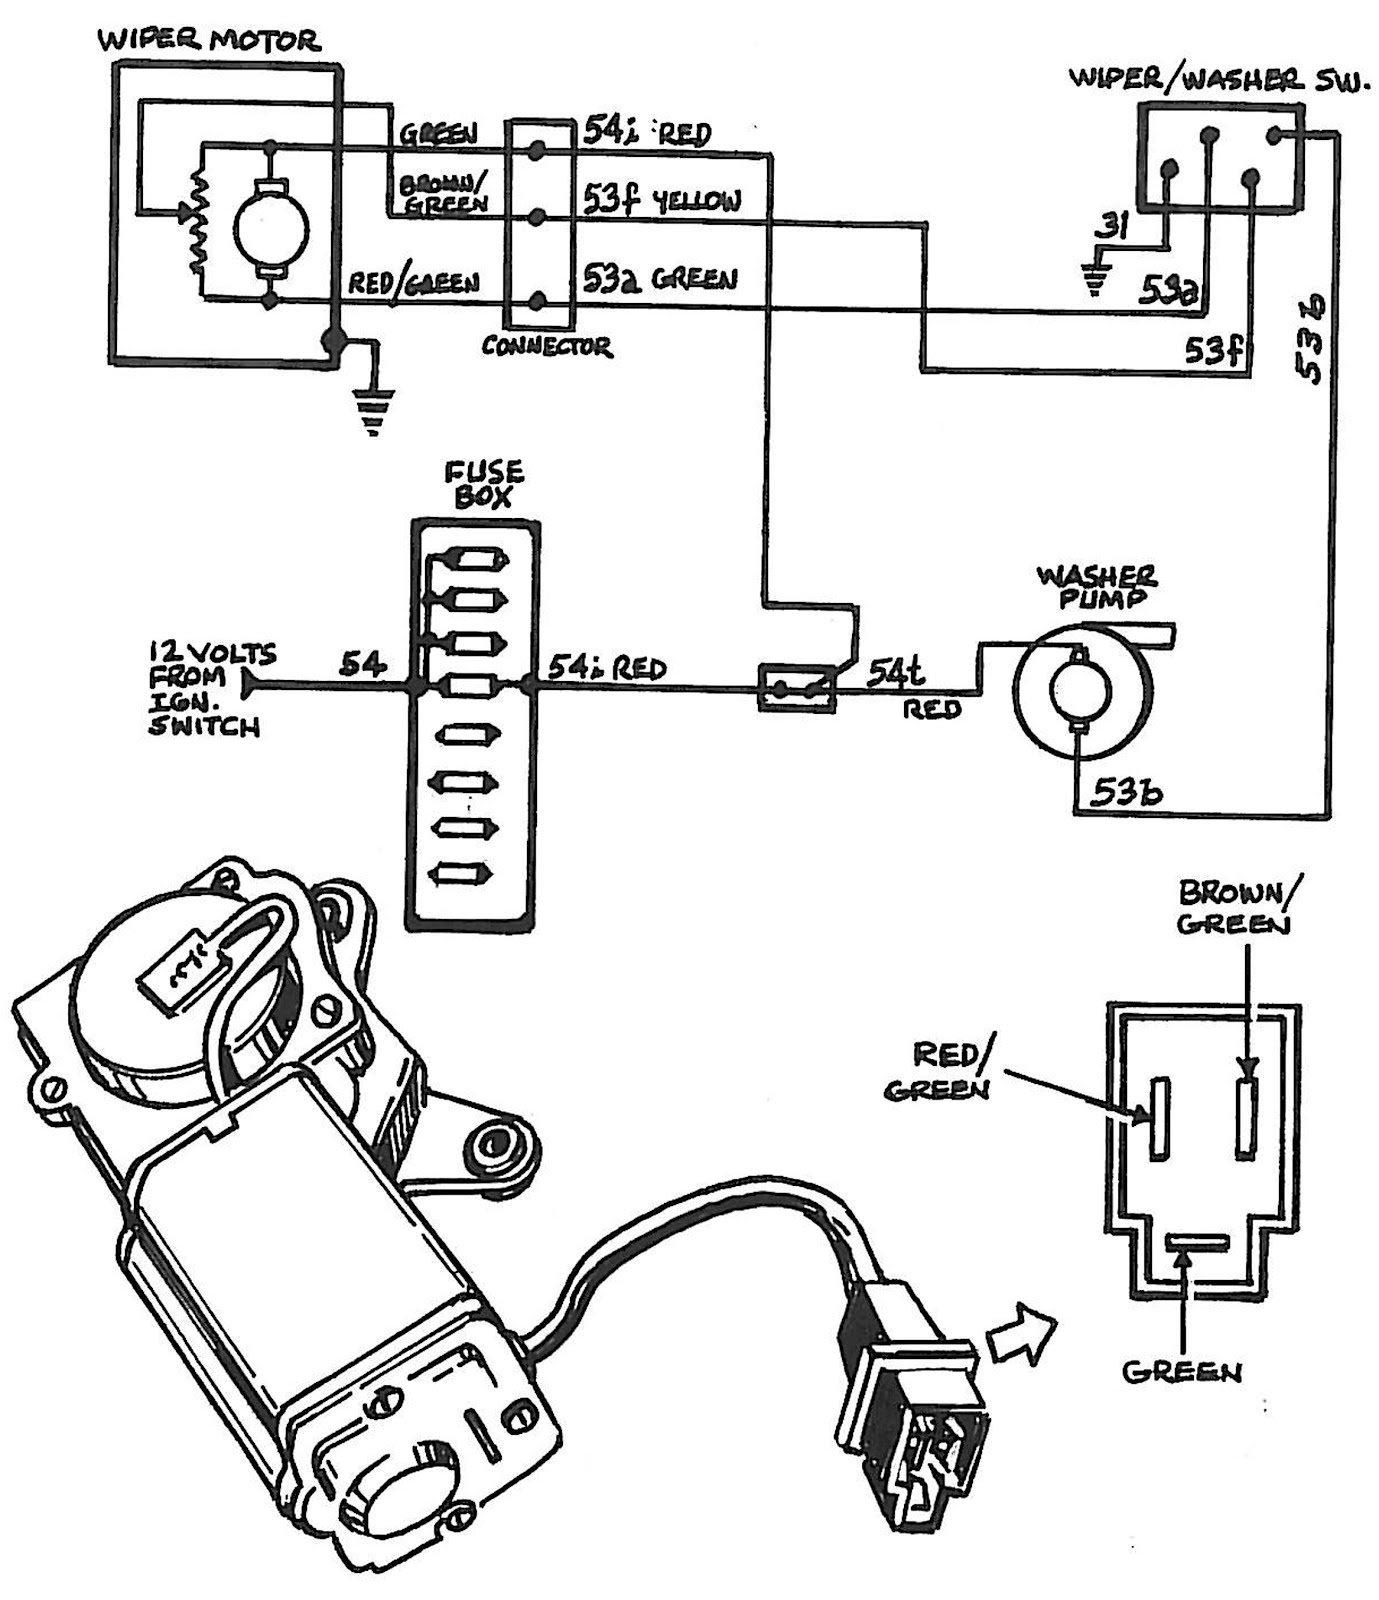 Wiper Motor Wiring Diagram Carrier Split Ac Chevrolet Get Free Image About